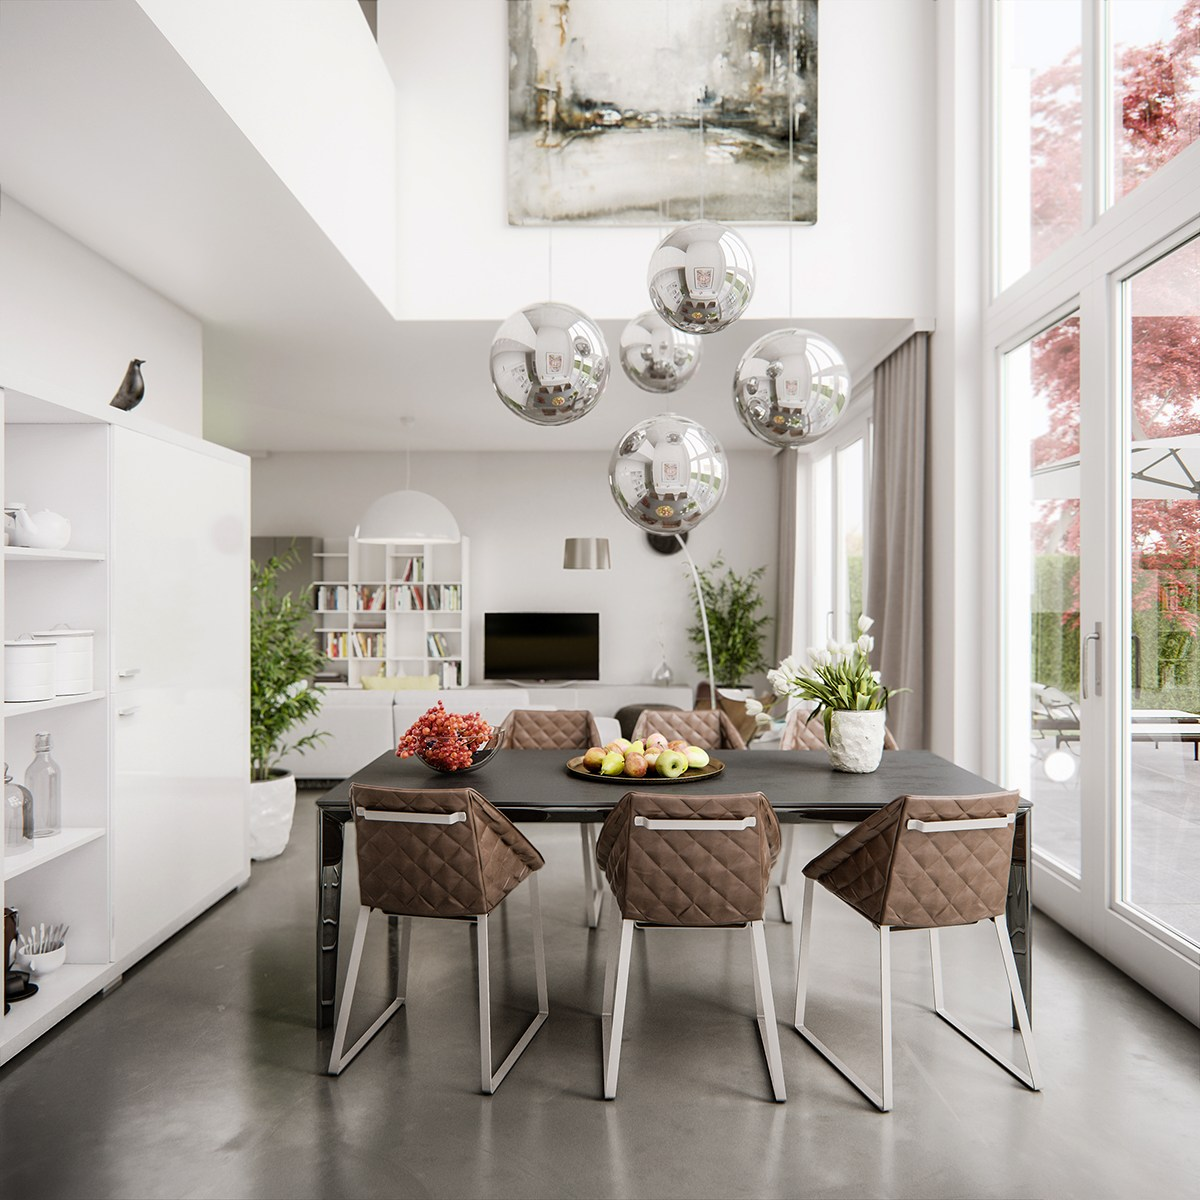 Dining Room: 5 Living Rooms That Demonstrate Stylish Modern Design Trends